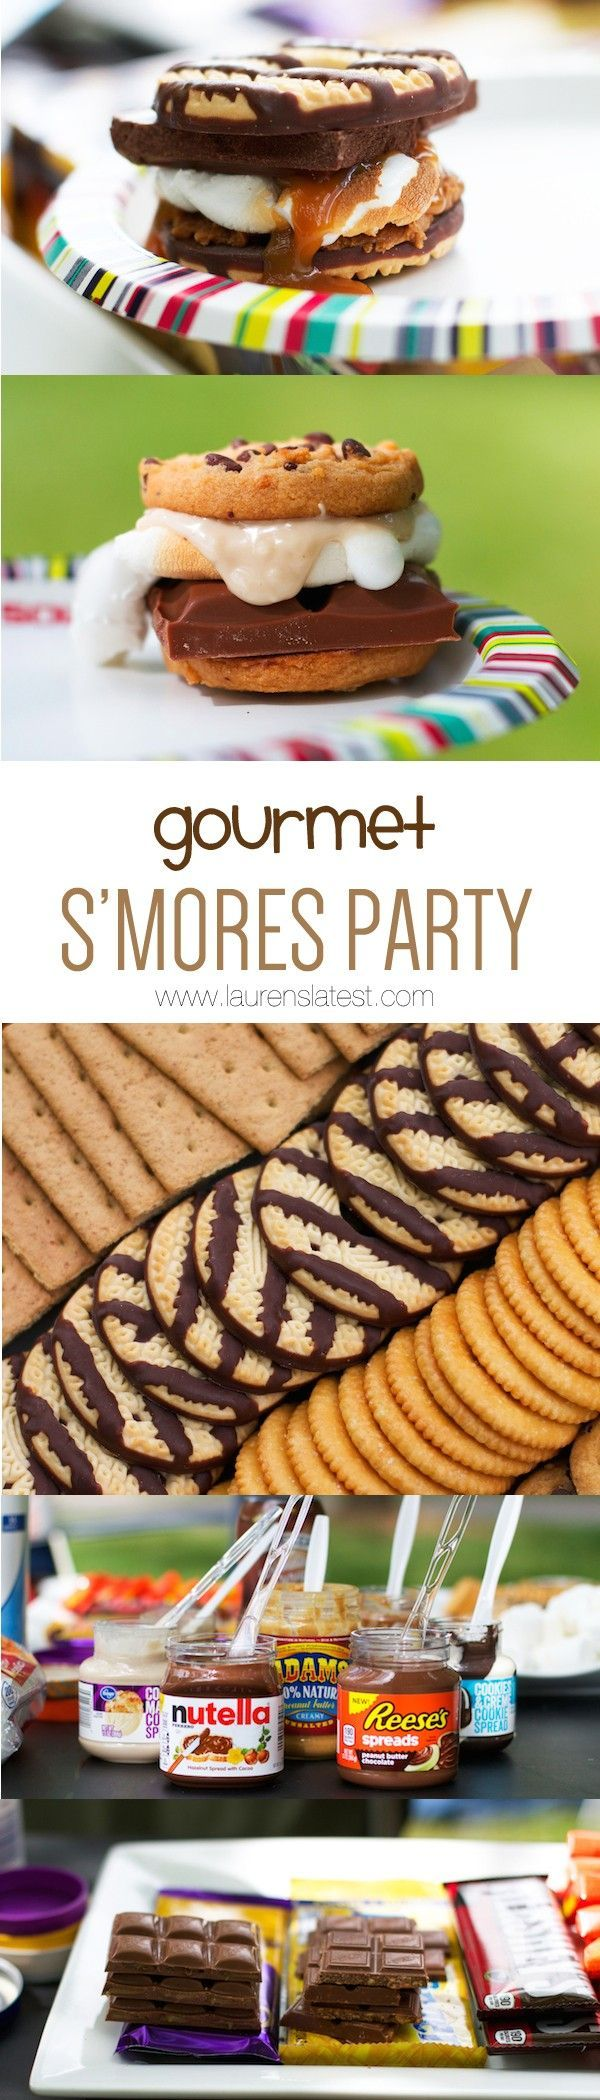 Gourmet S'mores Bar Party, such a fun #SummerParty theme.